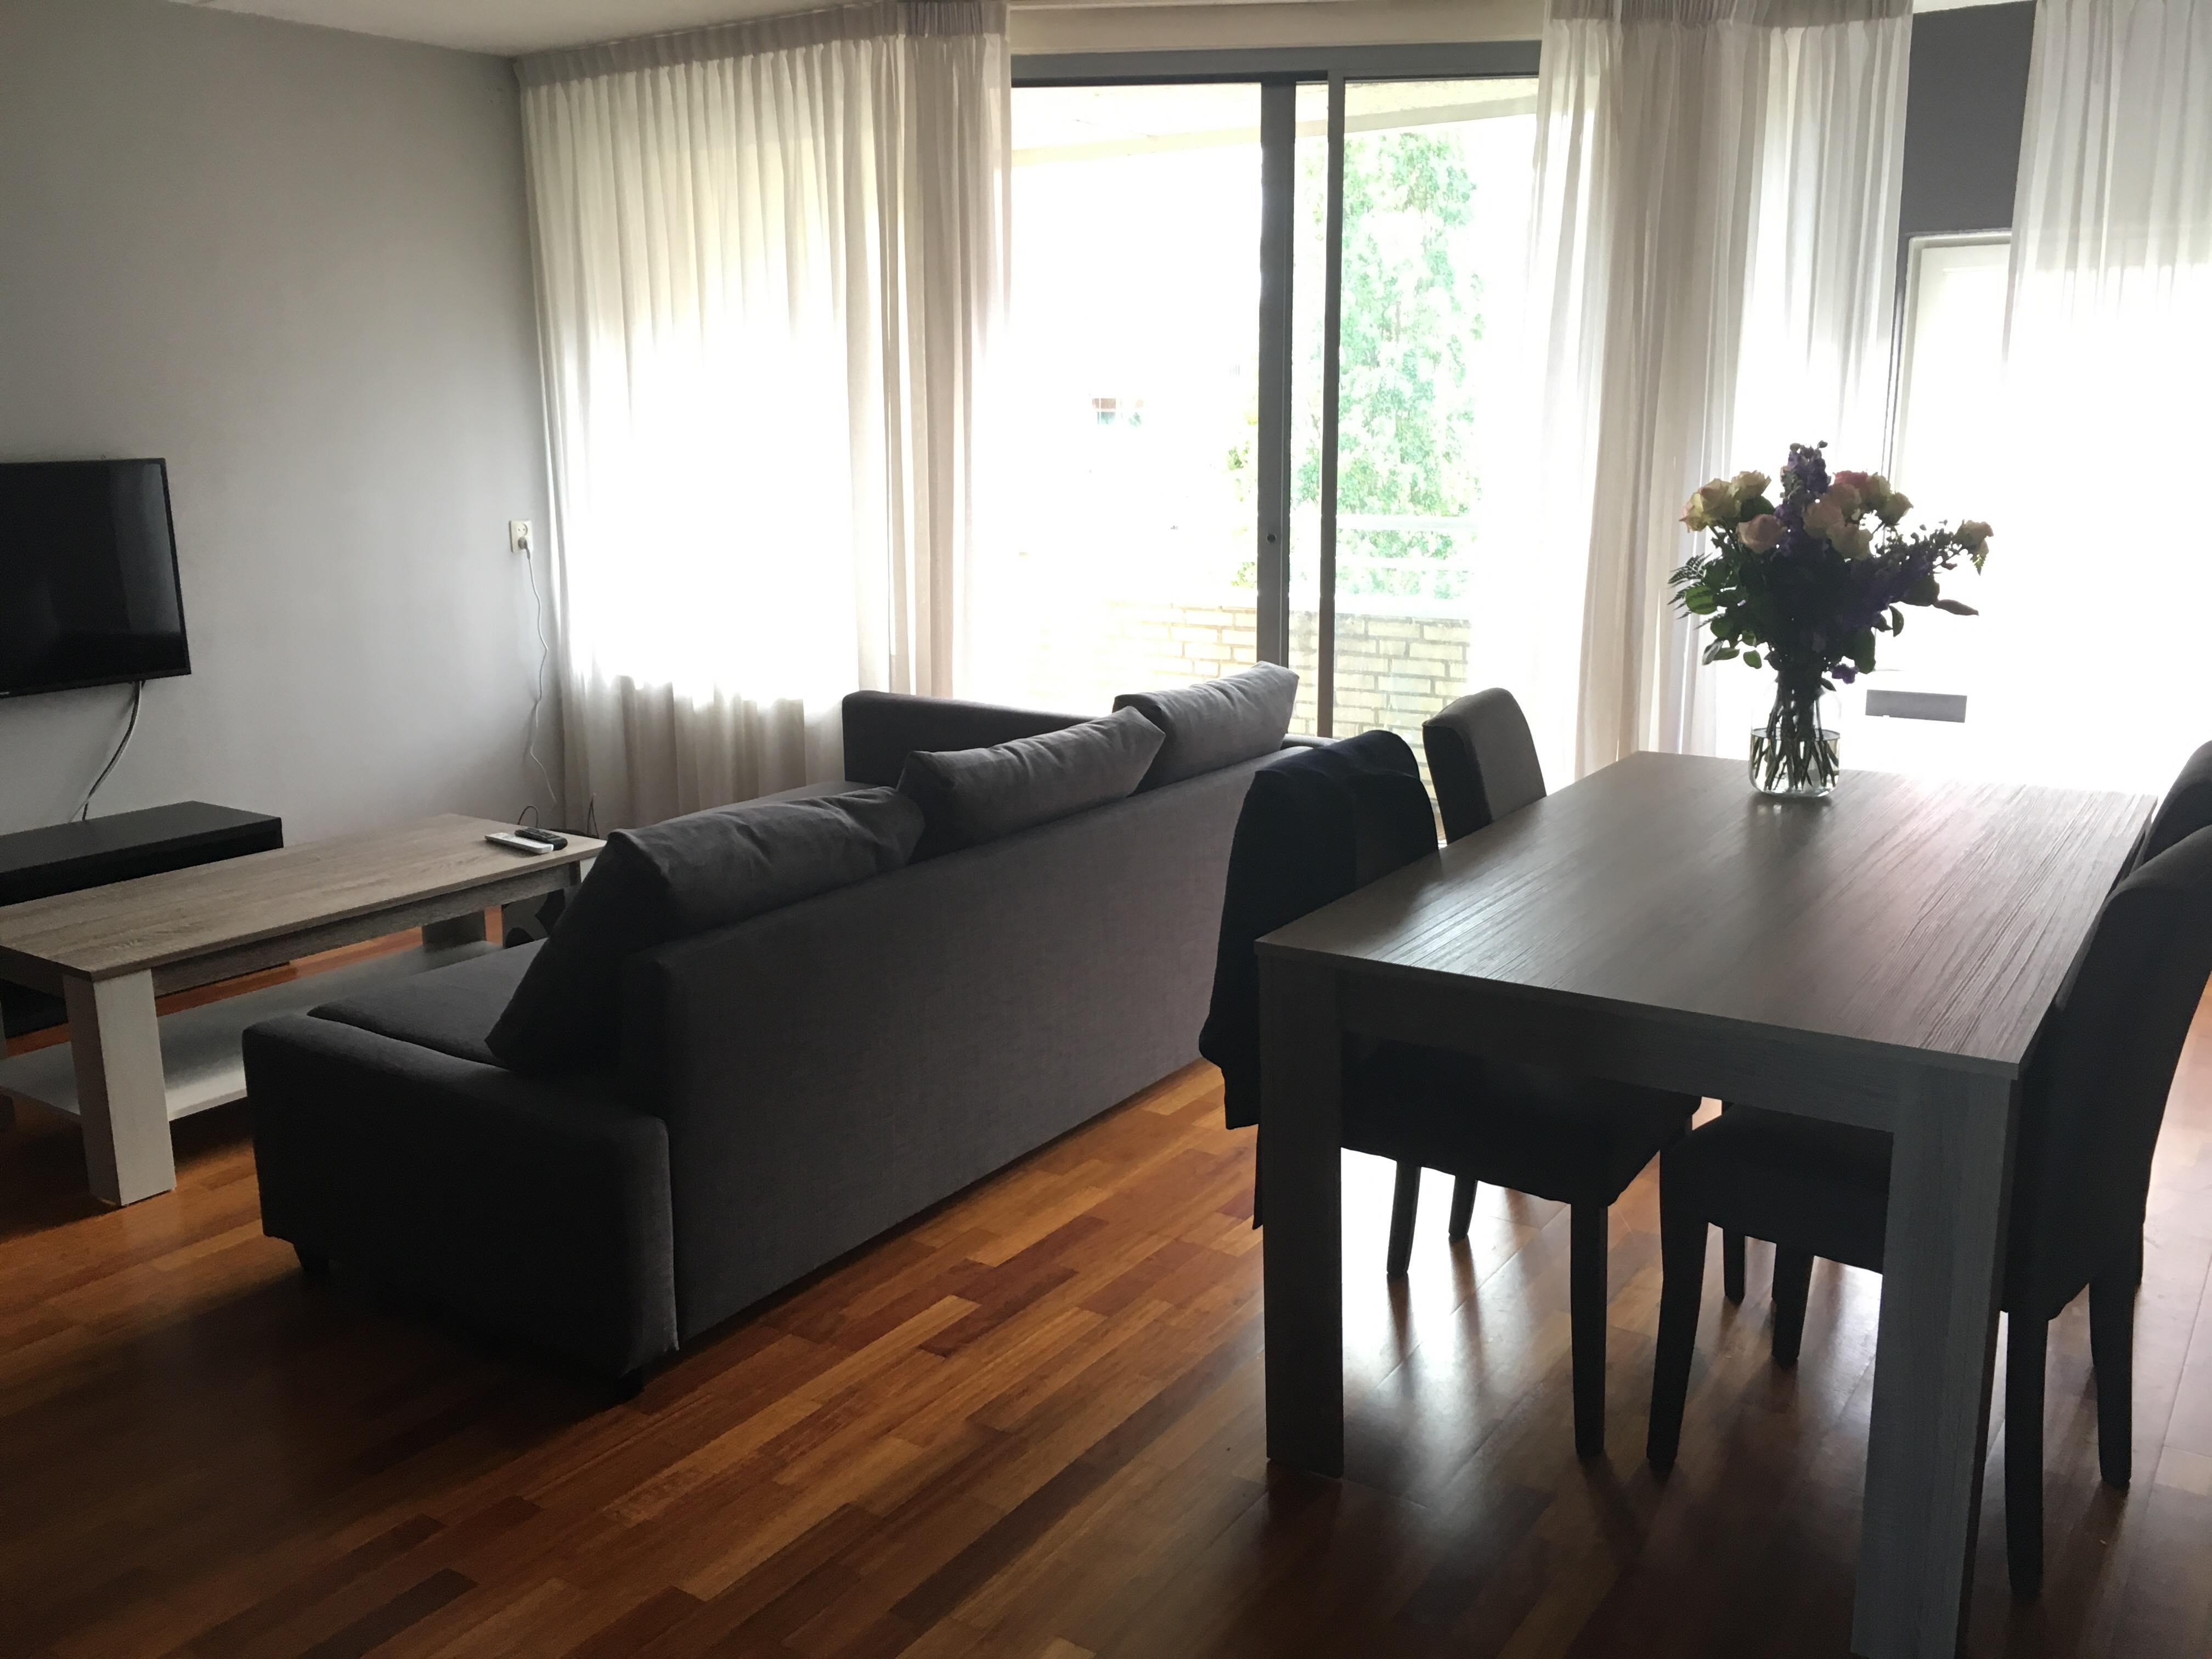 Furnished room in 90m2 apartment - only one housemate - Amsterdam West